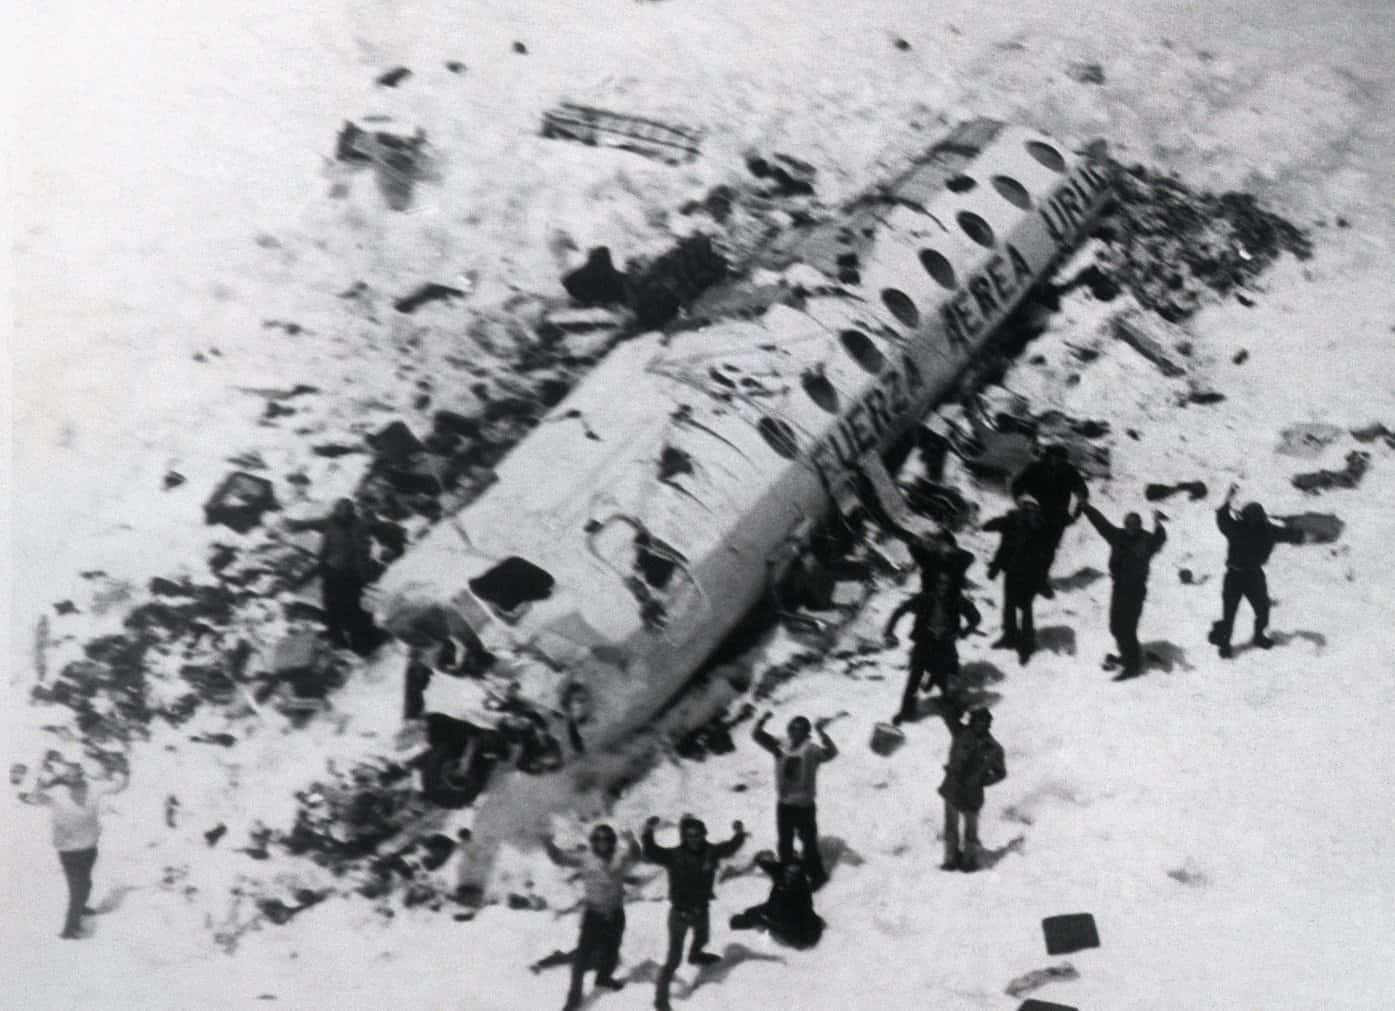 Andes Plane Crash Museum In Montevideo GuruGUAY - Mountainous terrain aircraft accidents map us